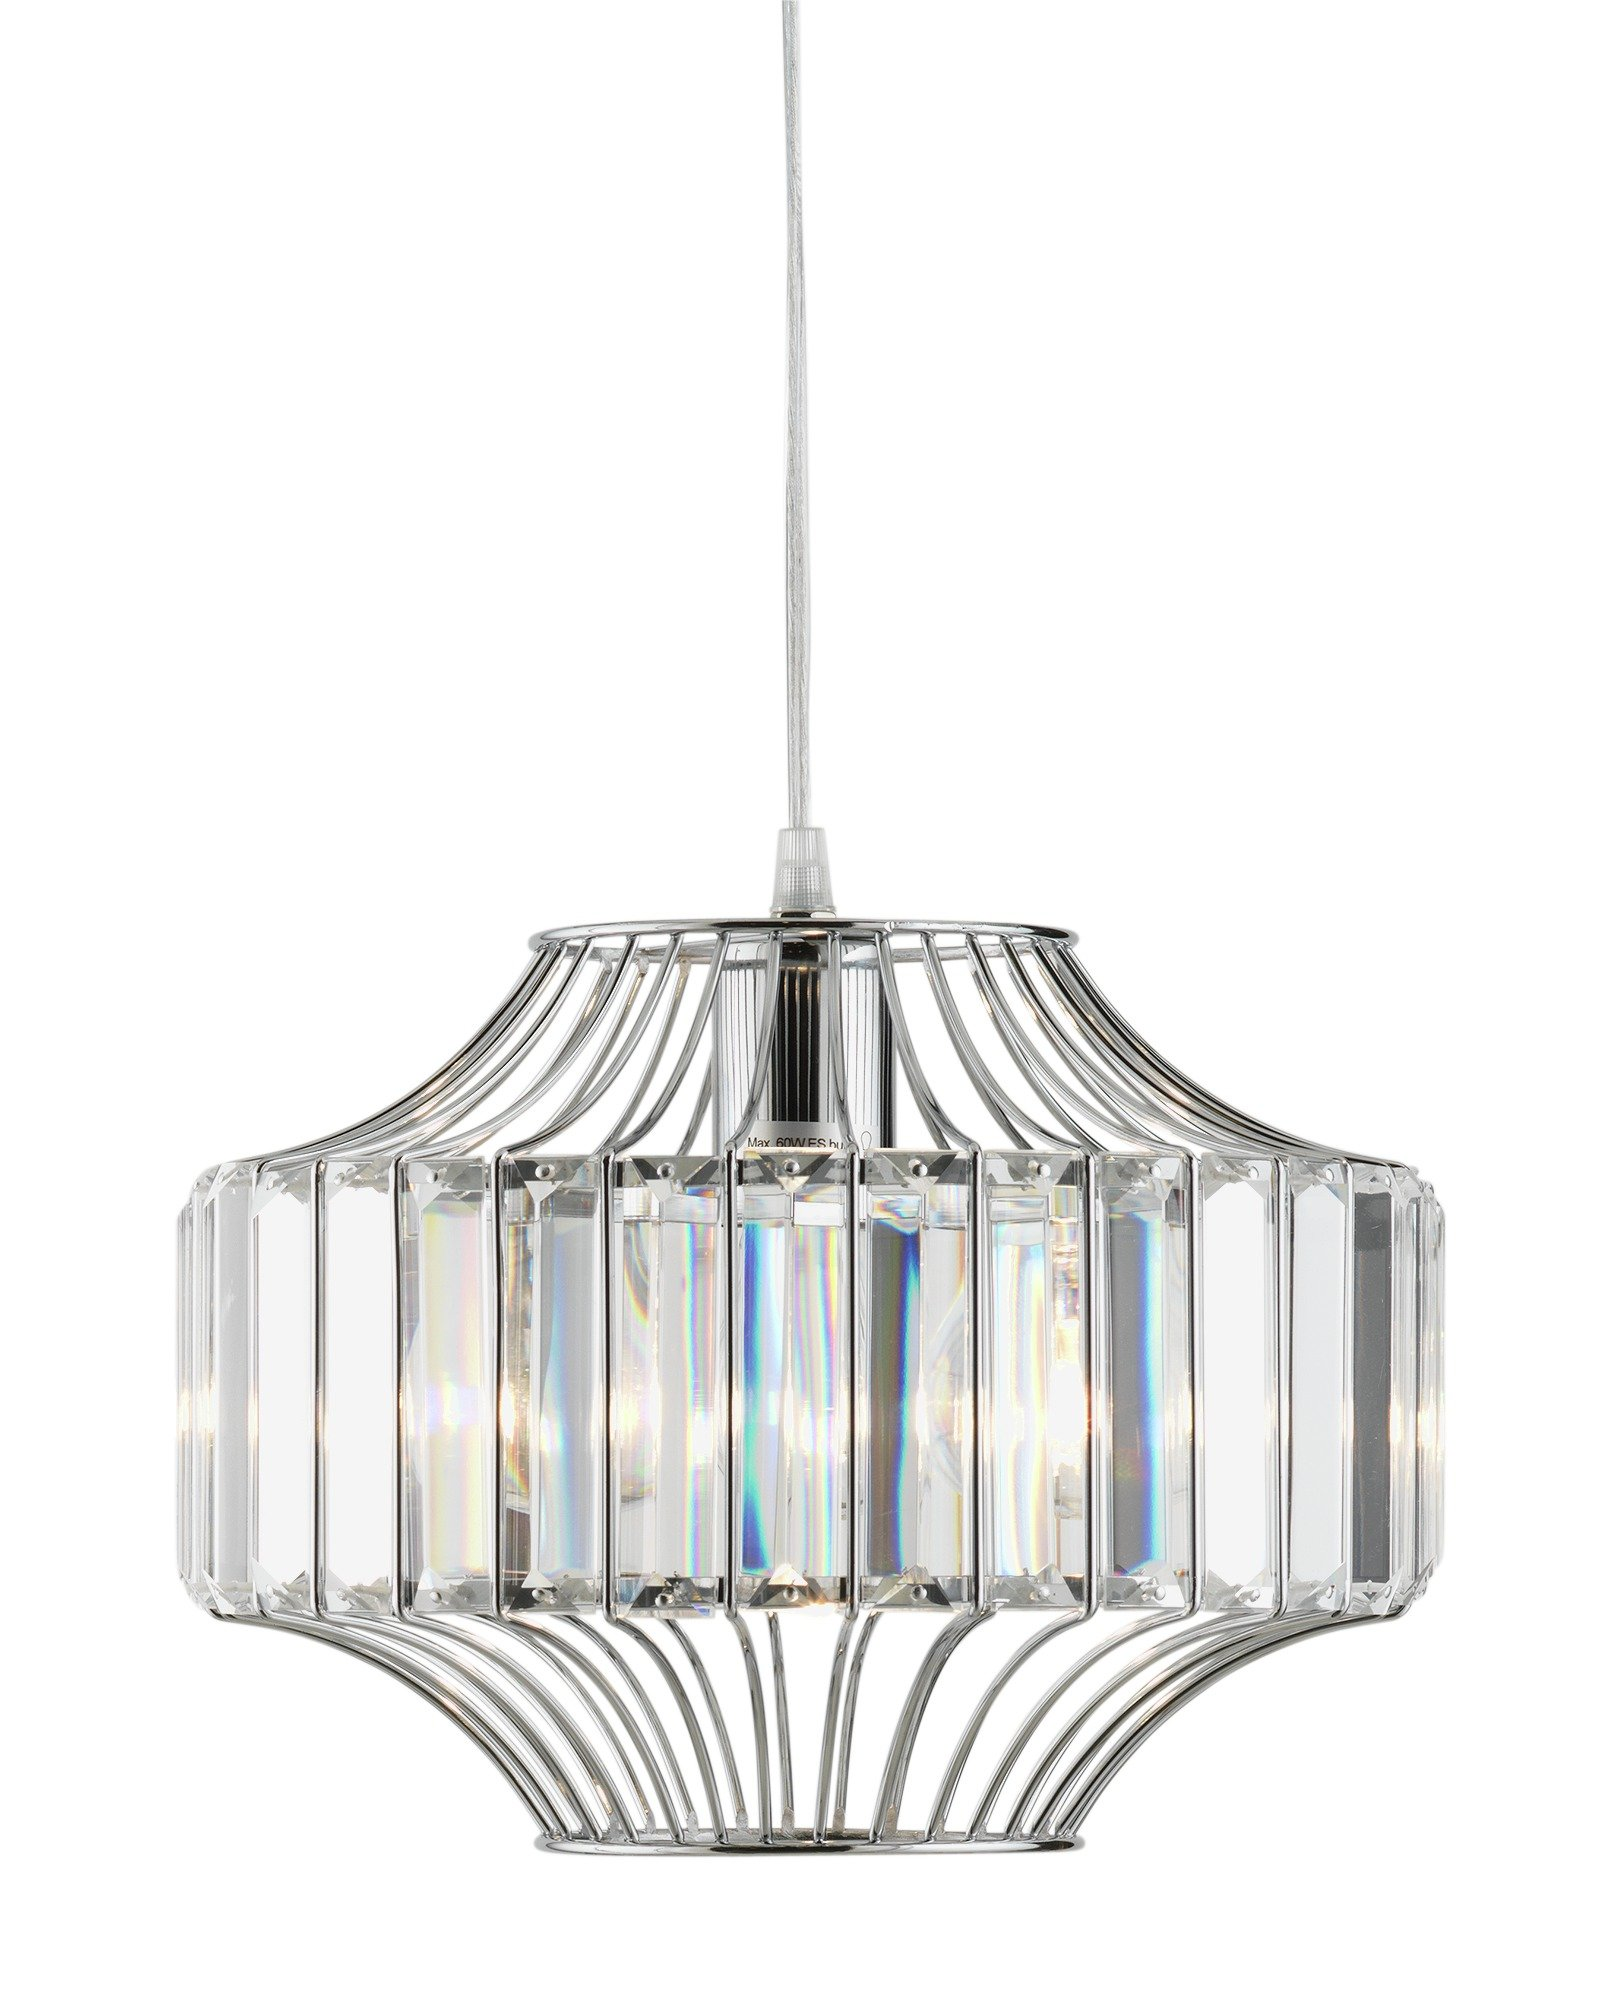 Argos Home Vienna Glass/Chrome Beaded Wire Pendant Light